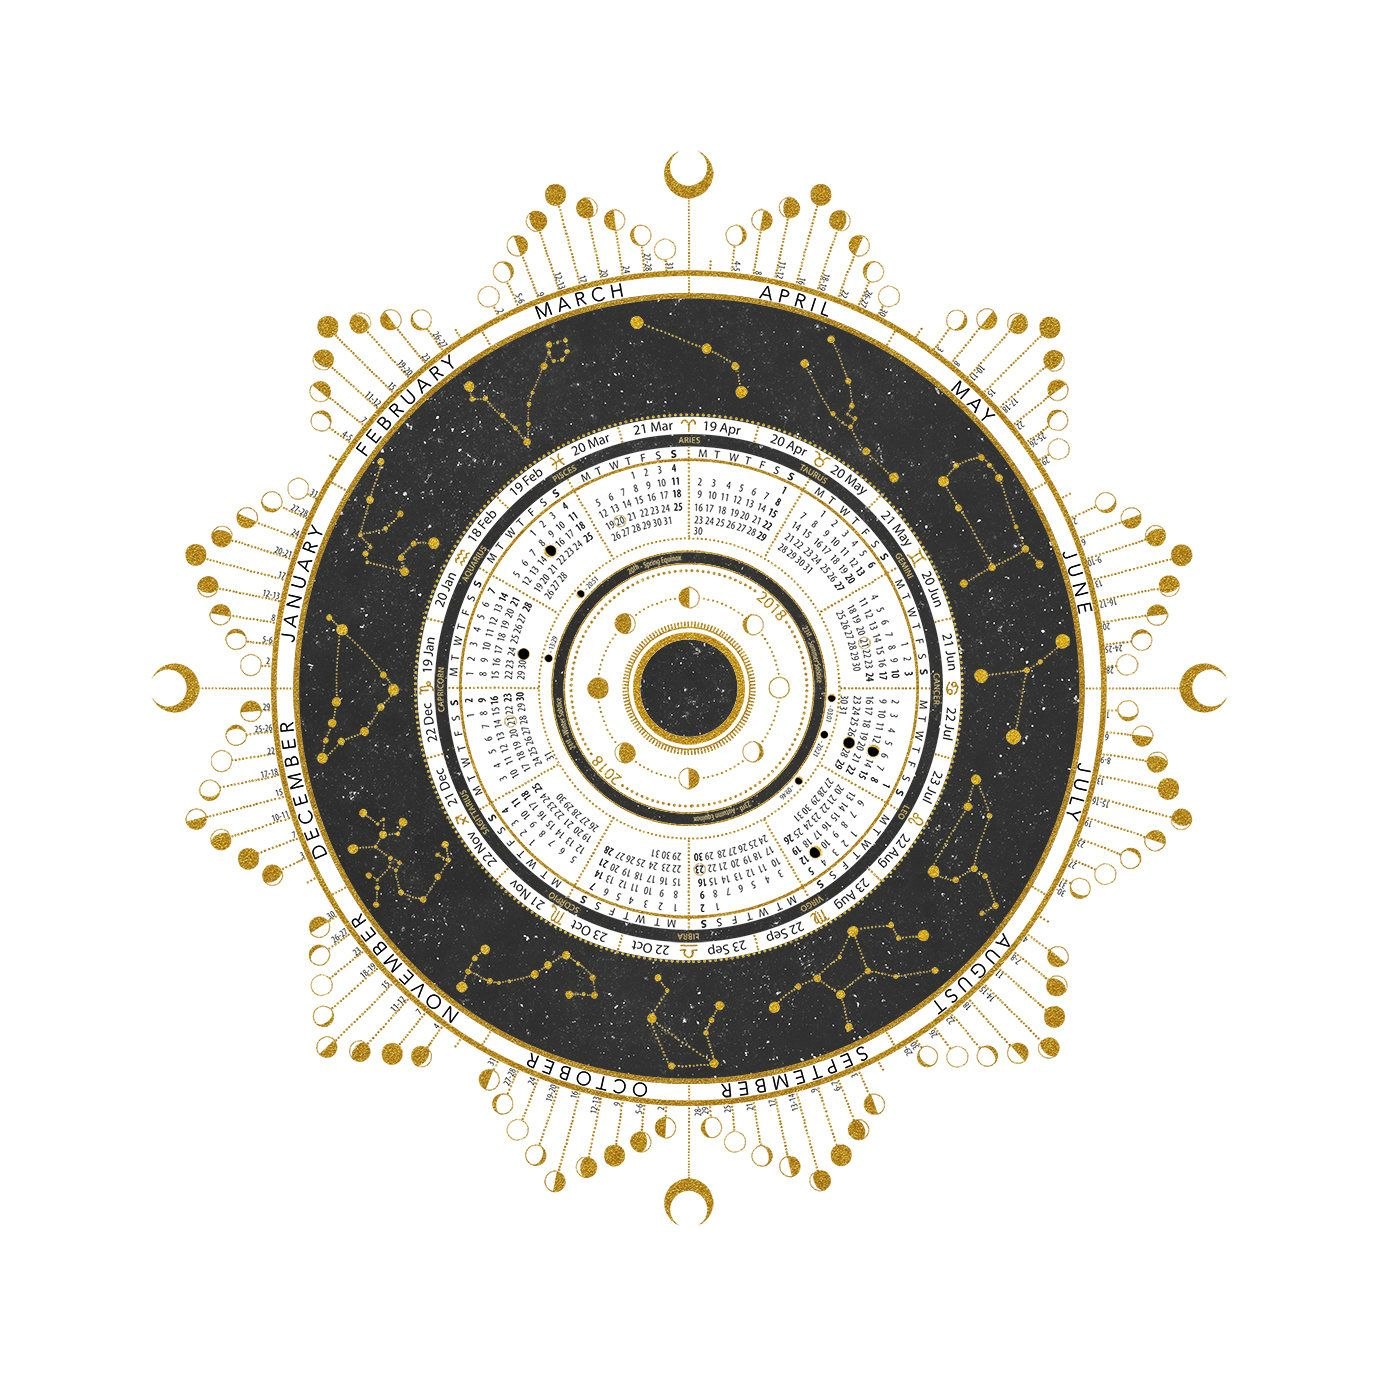 2018 Lunar Calendar Featuring Moon Phases Solstice Equinox Solar Lunar Eclipses With Exact Time And Astrology Calendar Lunar Calendar Moon Phase Calendar